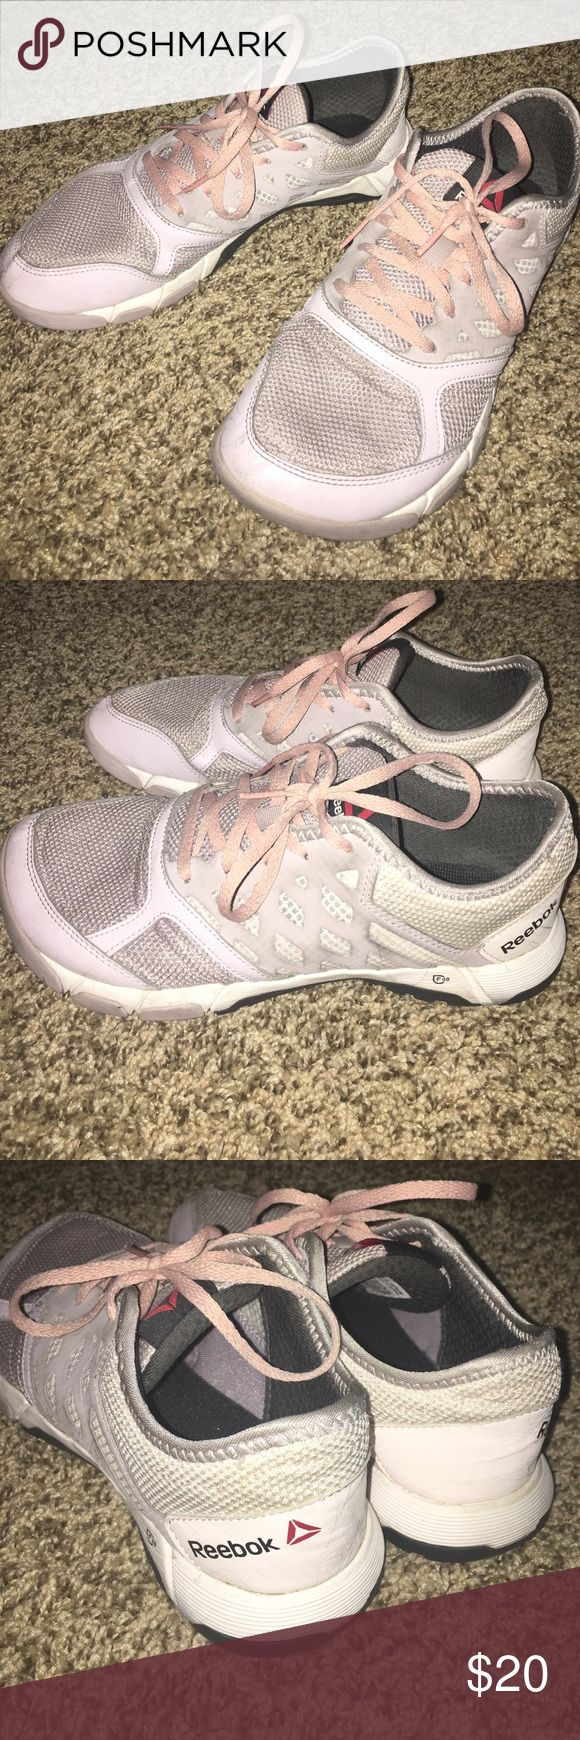 Reebok cross trainers Lavender and pink! Great for crossfit type workouts/Olympic lifting. Not ideal for long distance running. Owned for a year, some minor marks/scuffs. These cross trainers are really hard to find! Reebok Shoes Sneakers